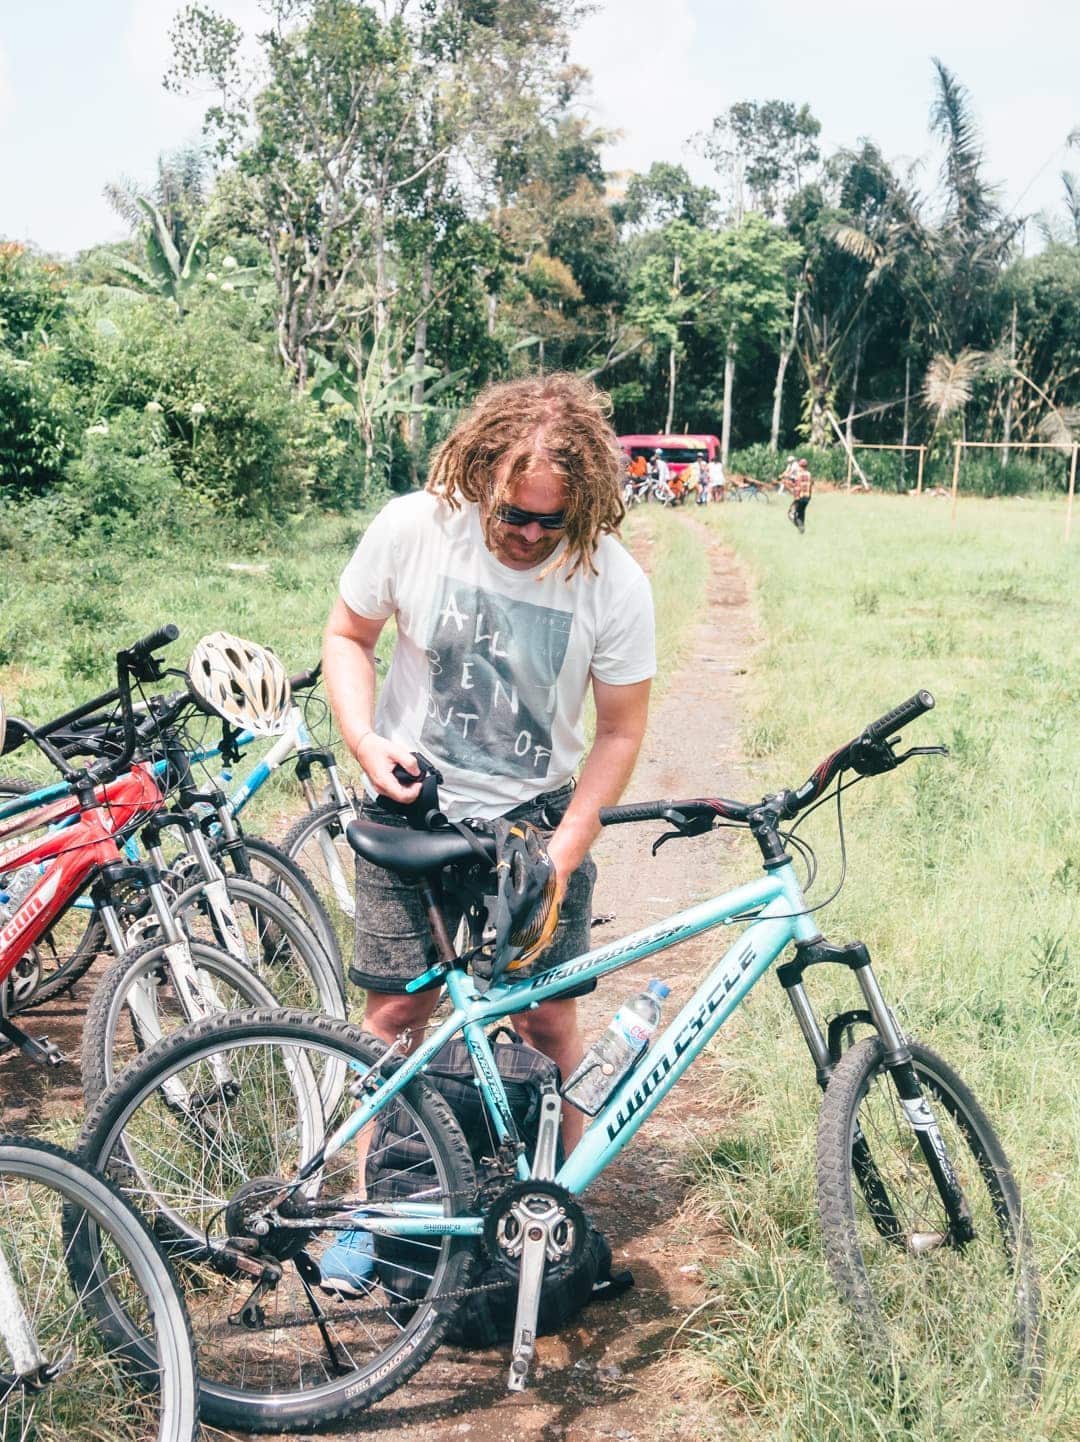 A review of Jegeg Bike Tour in Ubud - The best Bali experience